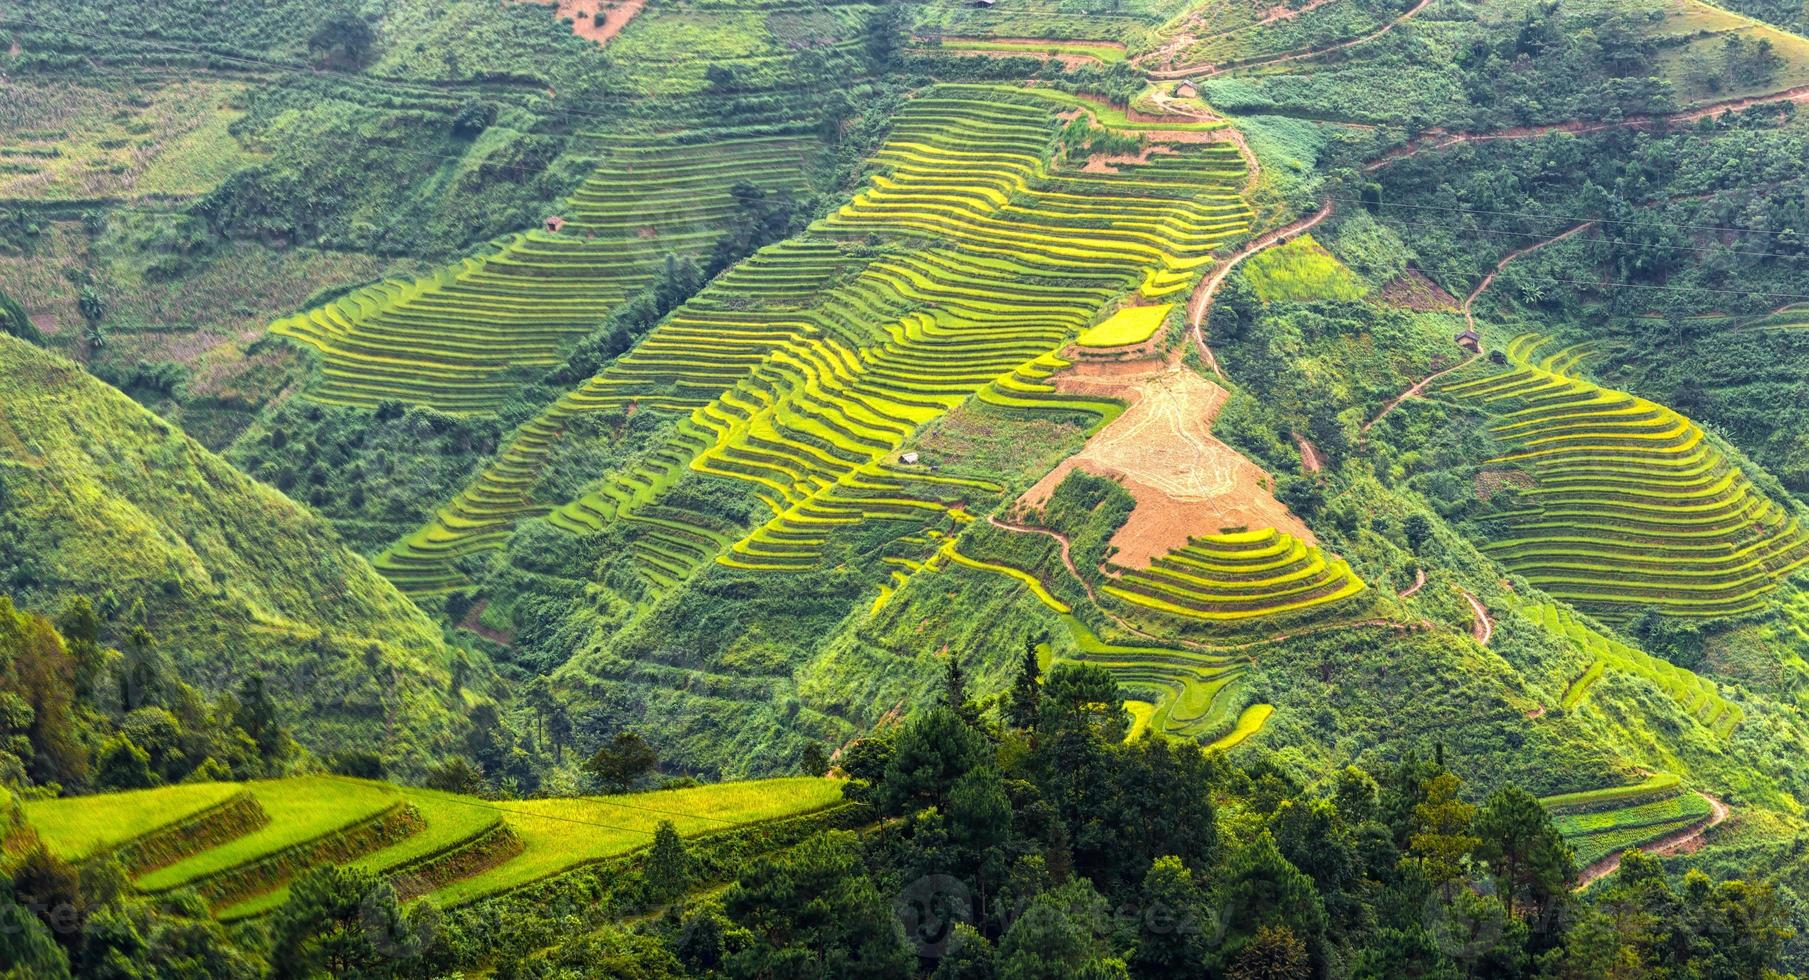 Terraced fields on the hills of Ha Giang, Vietnam photo